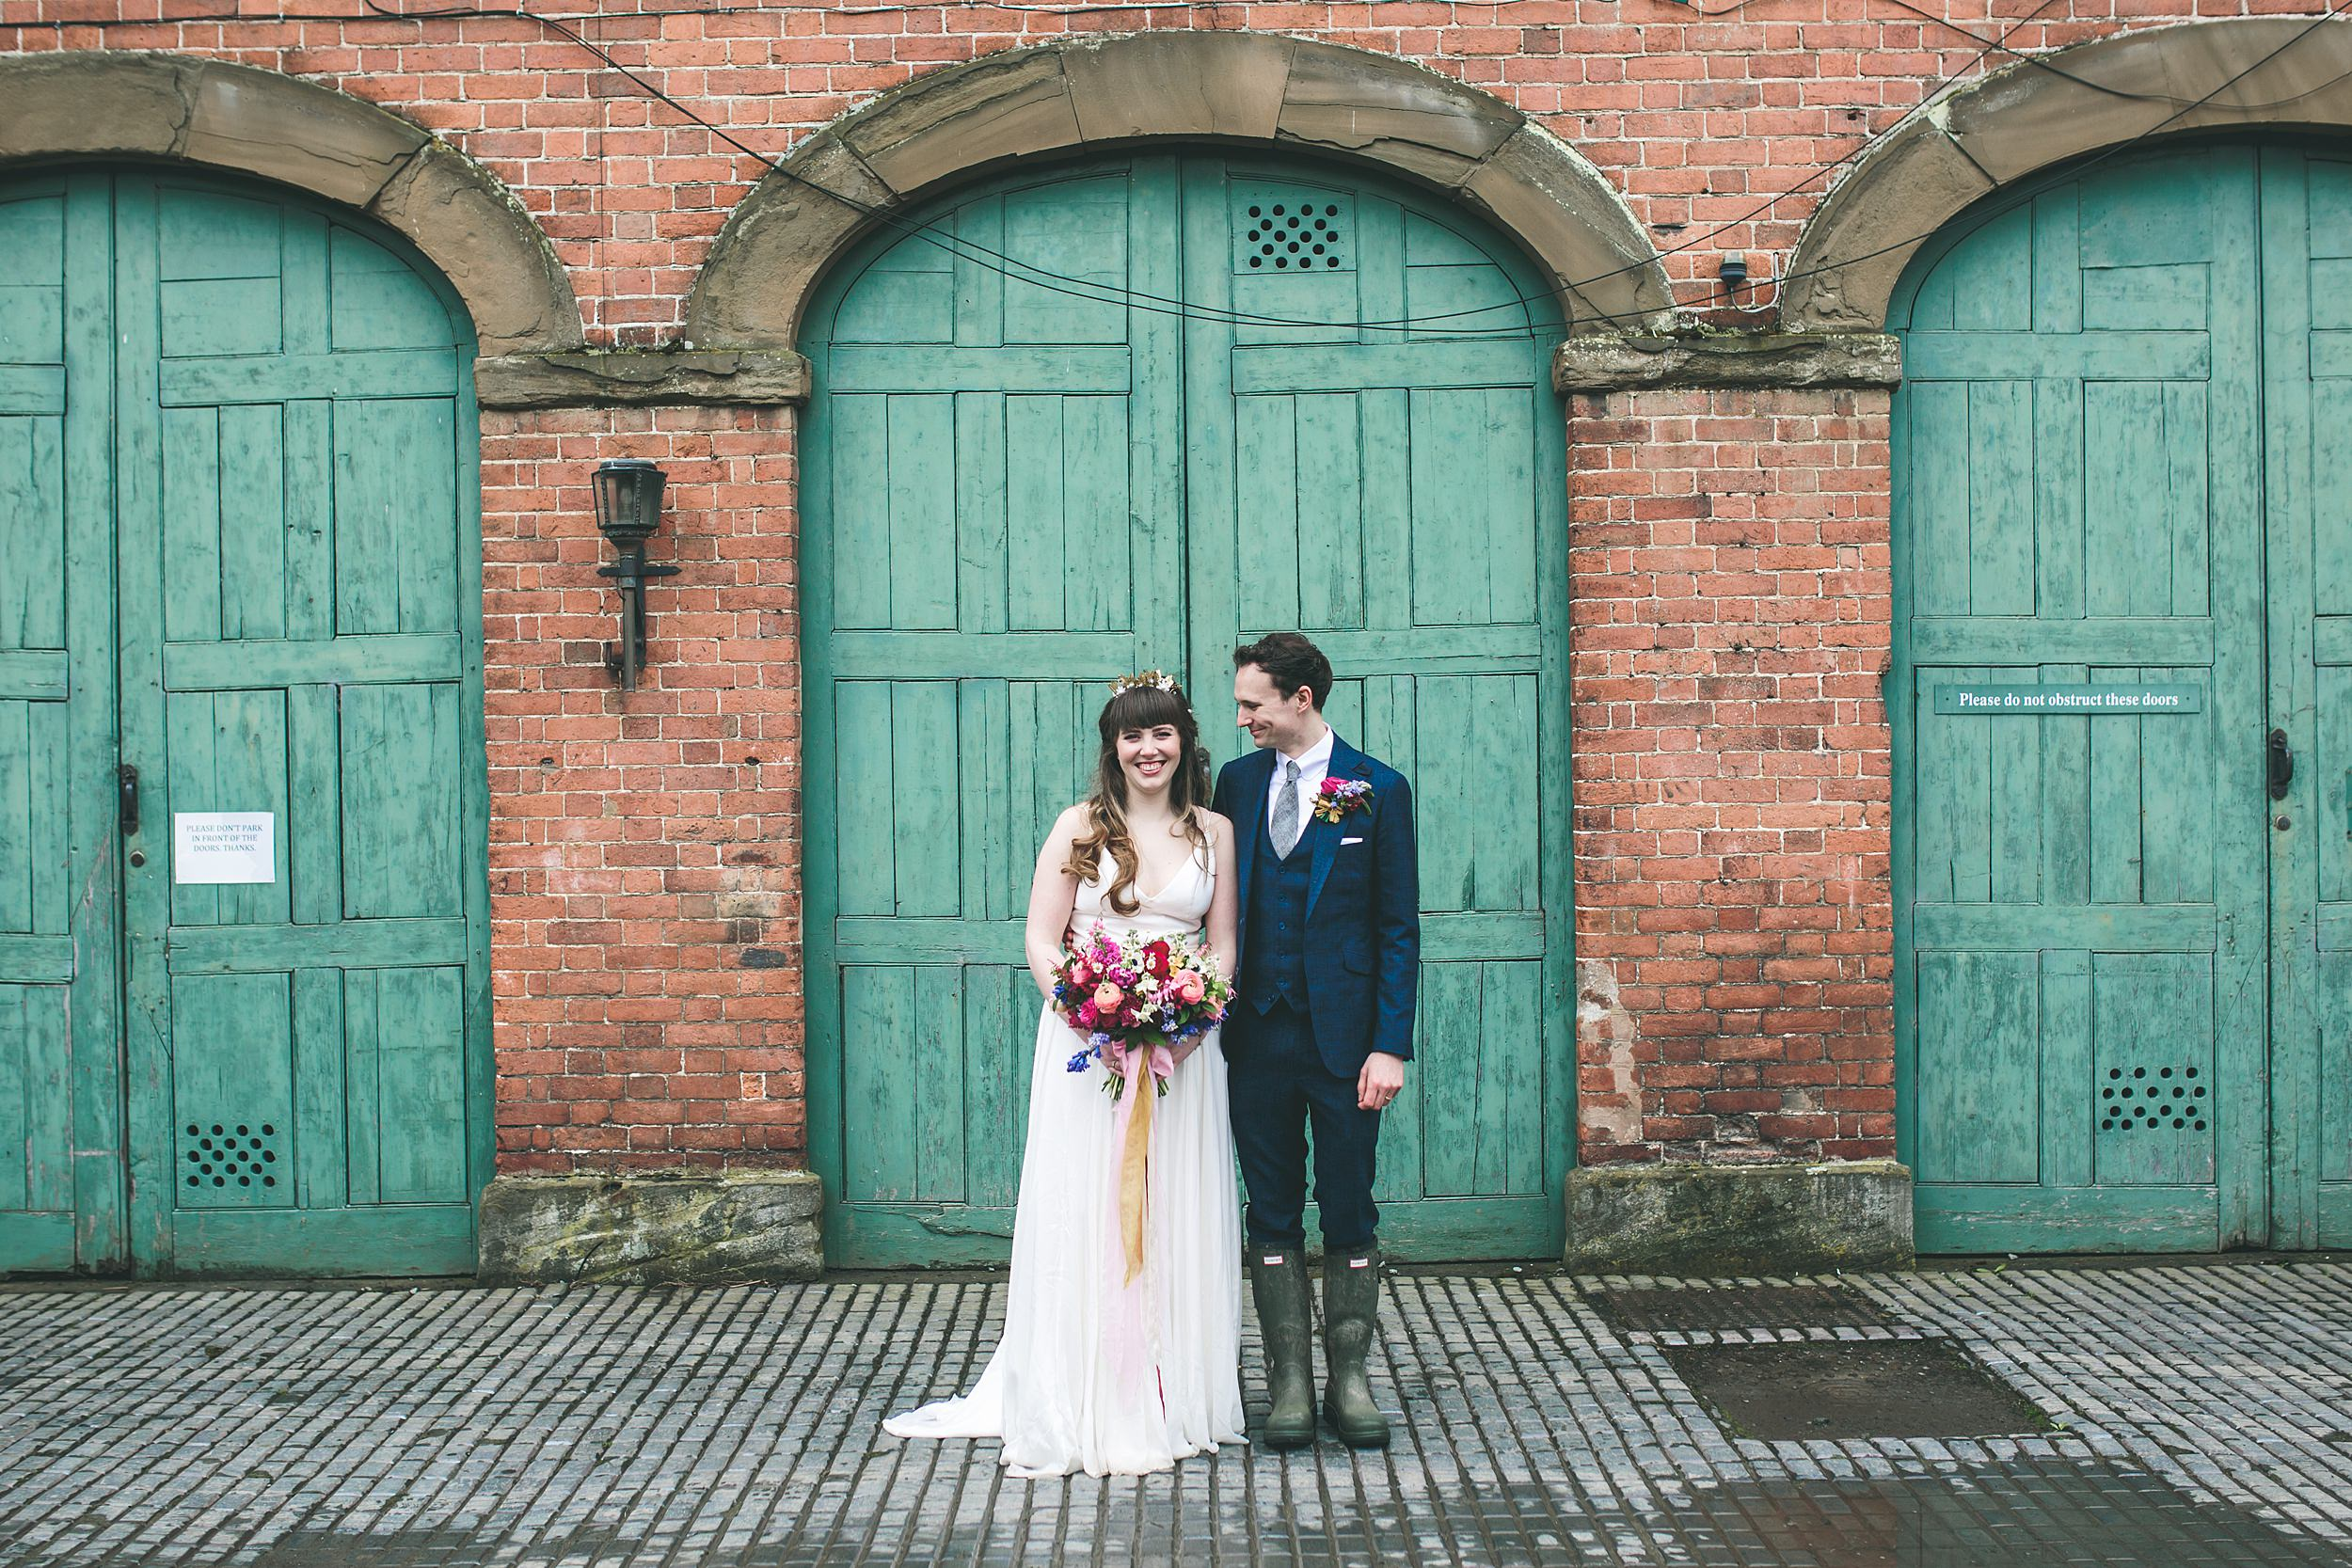 Walcot Hall Wes Anderson wedding photography